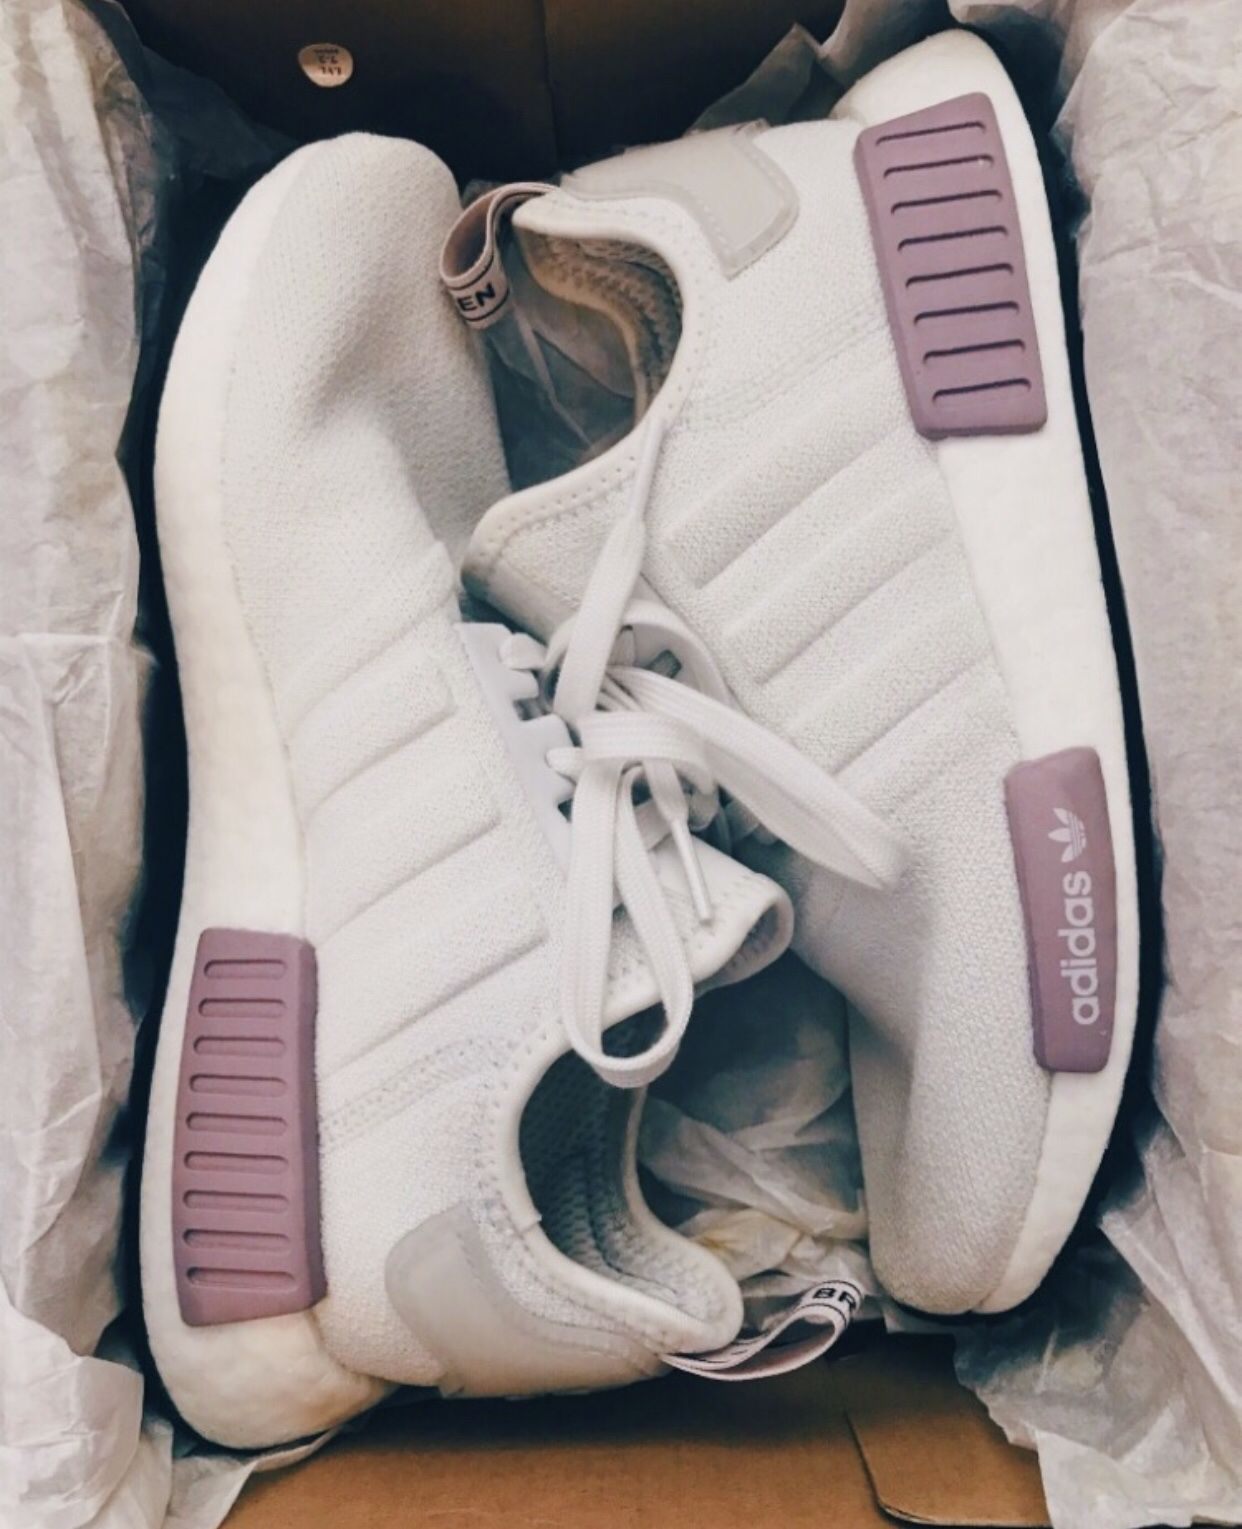 vsco cuteclothes | Pretty shoes sneakers, Addidas shoes, Shoes